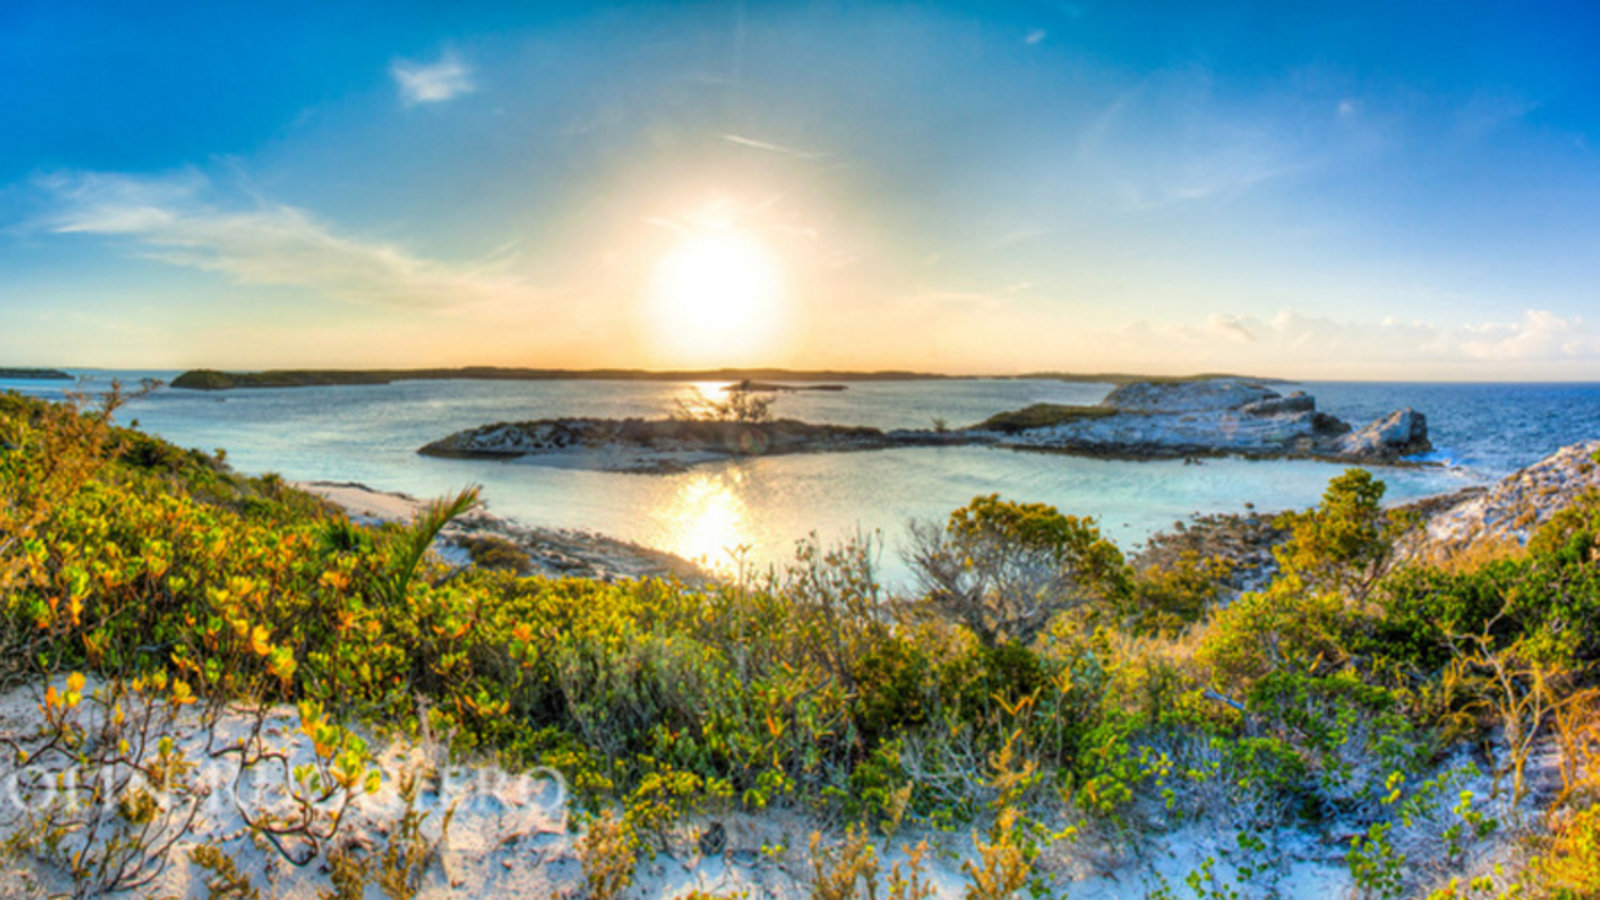 Exuma - Remote Islands in the Bahamas